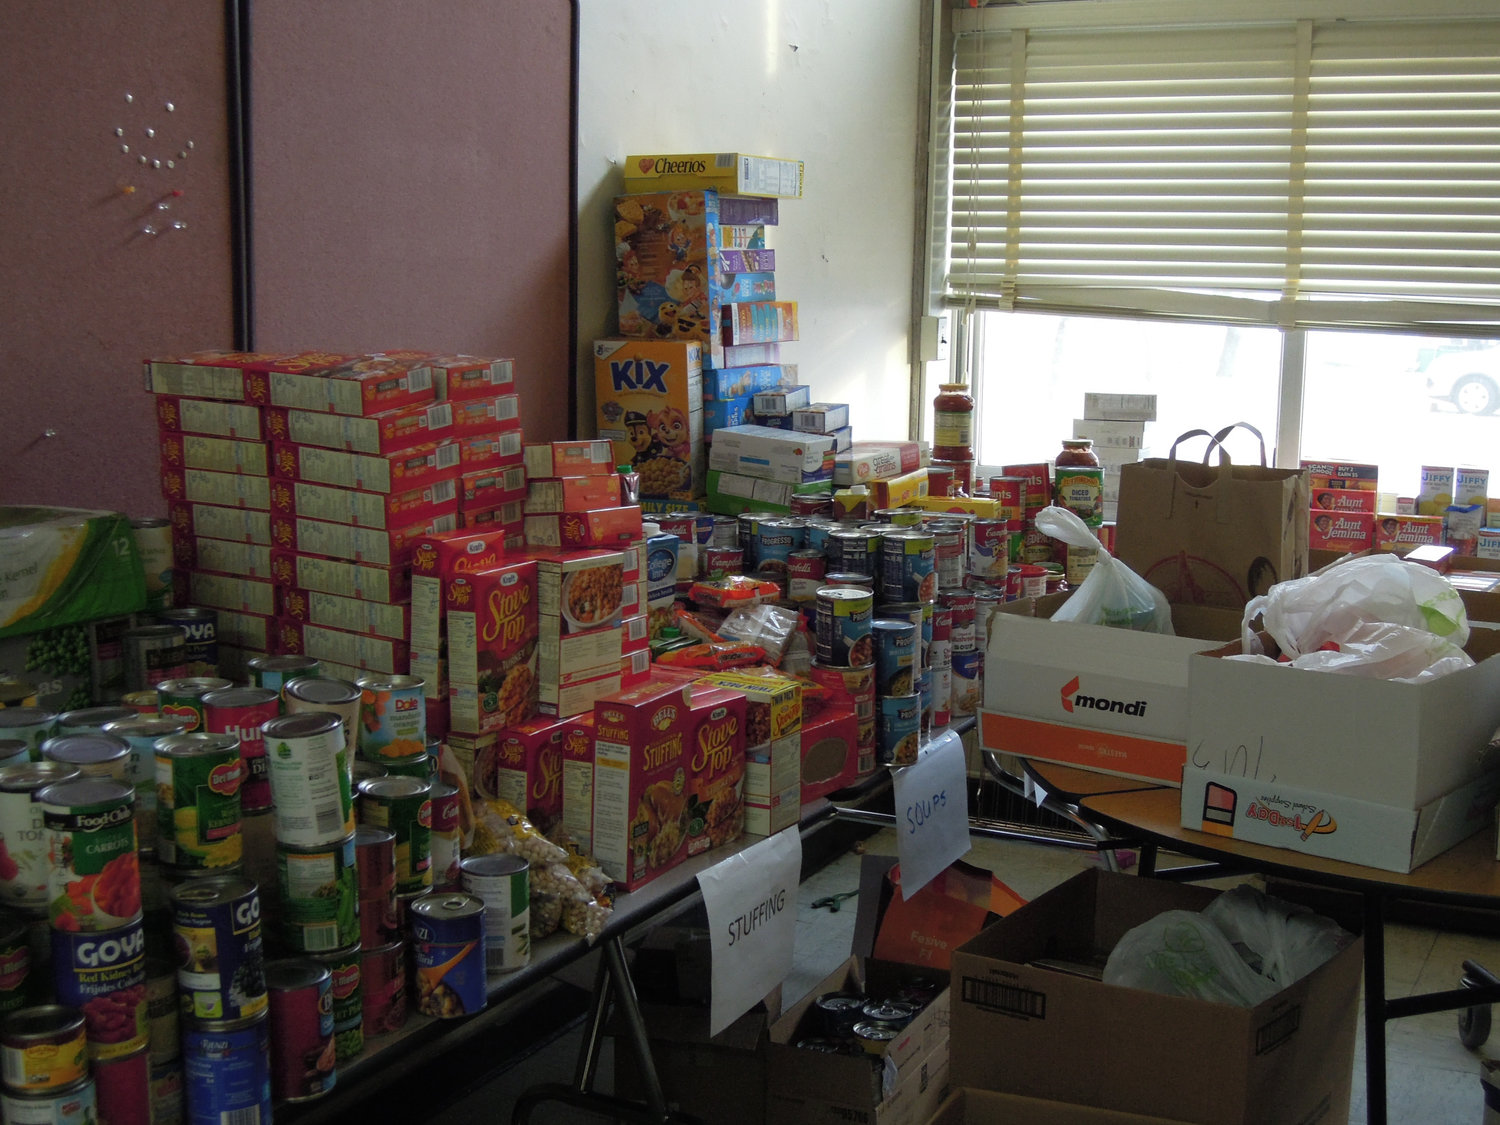 Some of the items that filled the large pantry behind Seaford High School's kitchen.